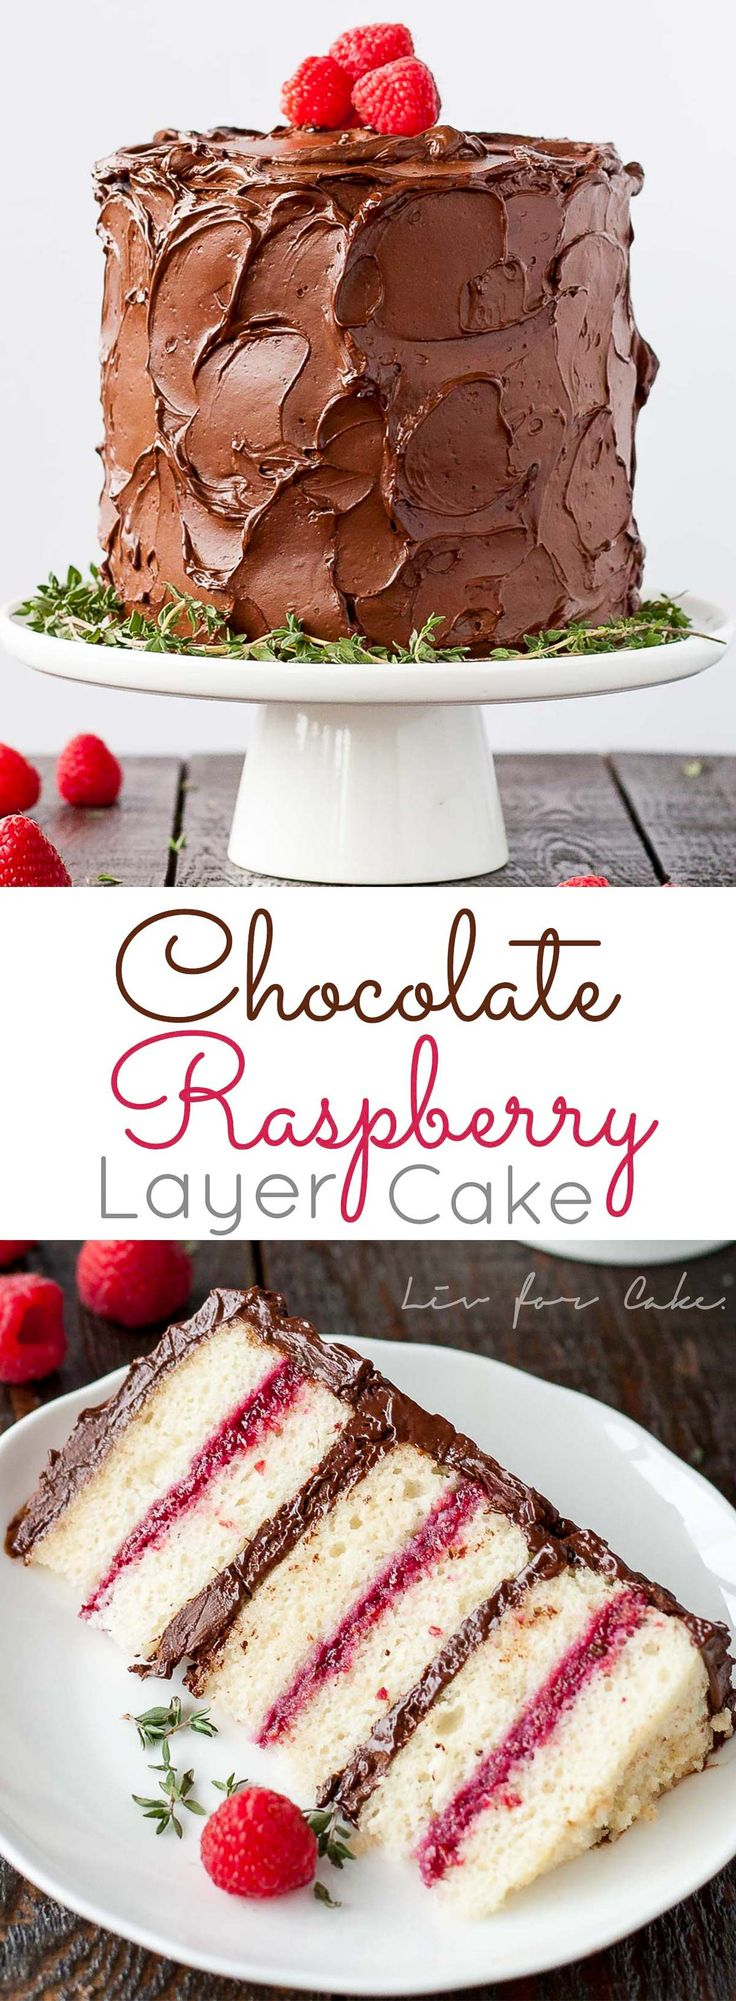 Chocolate Raspberry Layer Cake. Six glorious layers of vanilla cake with raspberry sauce and a rich dark chocolate frosting.